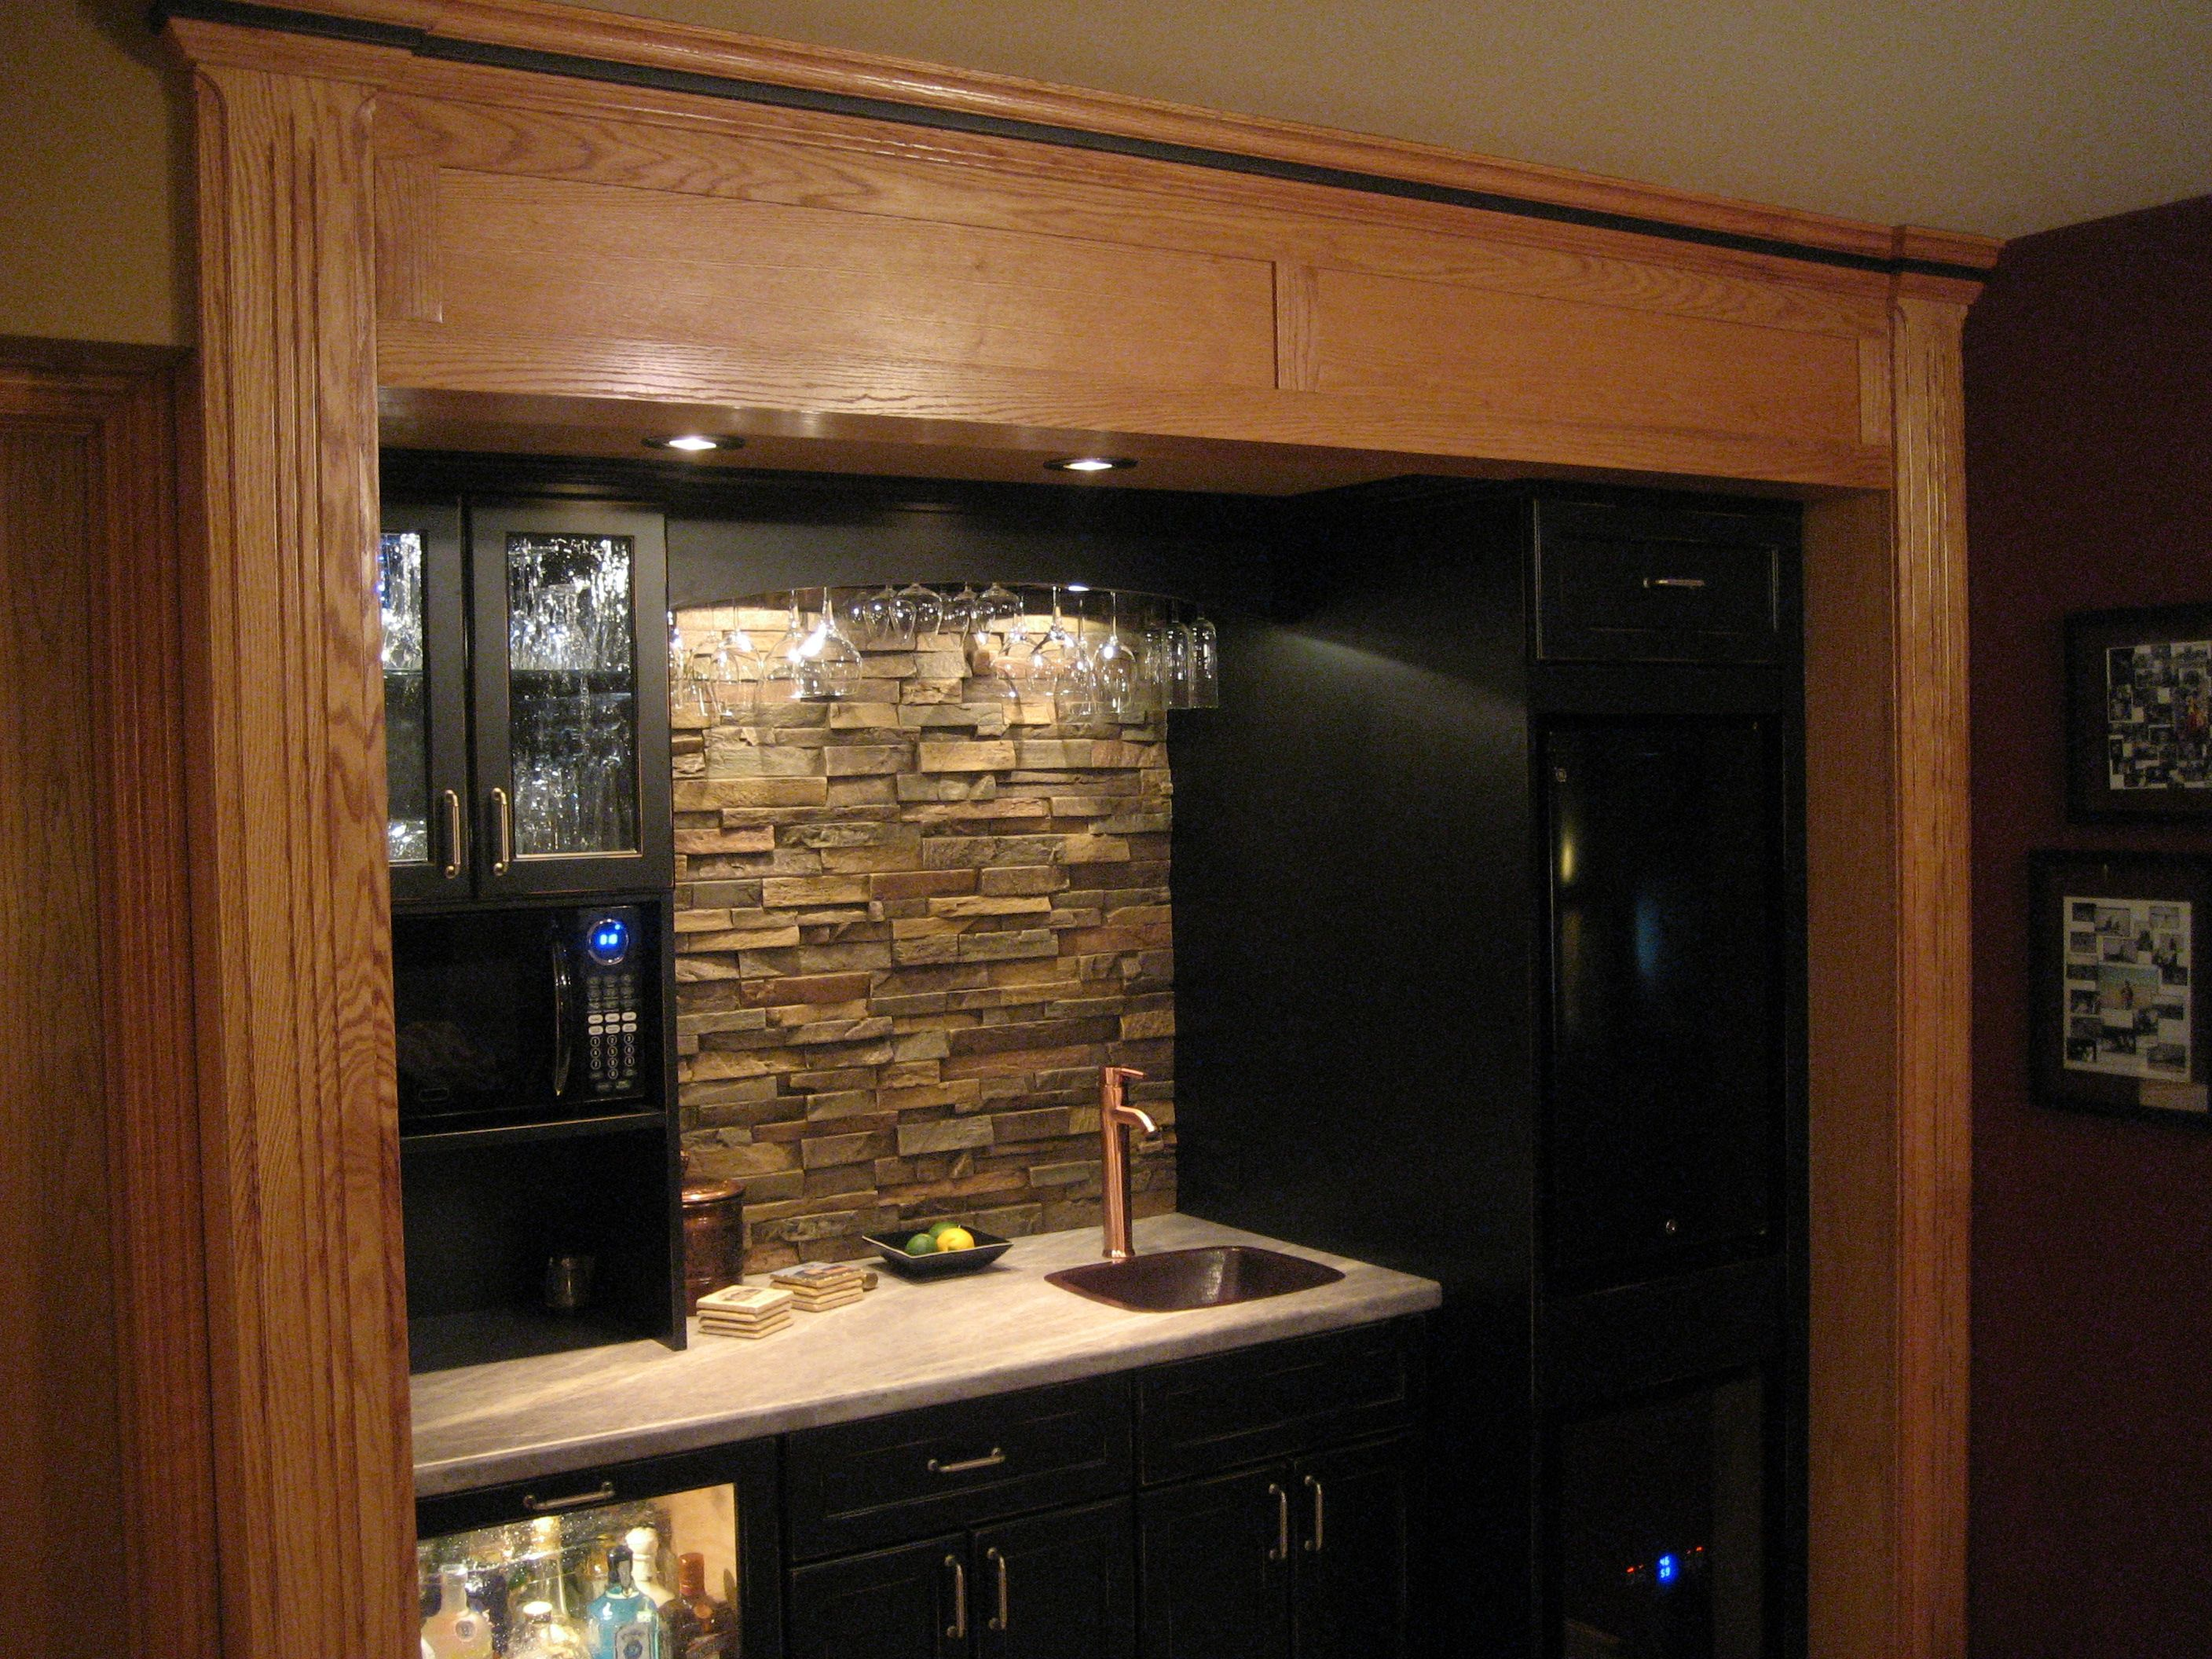 Great Backsplash Ideas stone backsplash ideas for kitchen | adding stone veneer into the